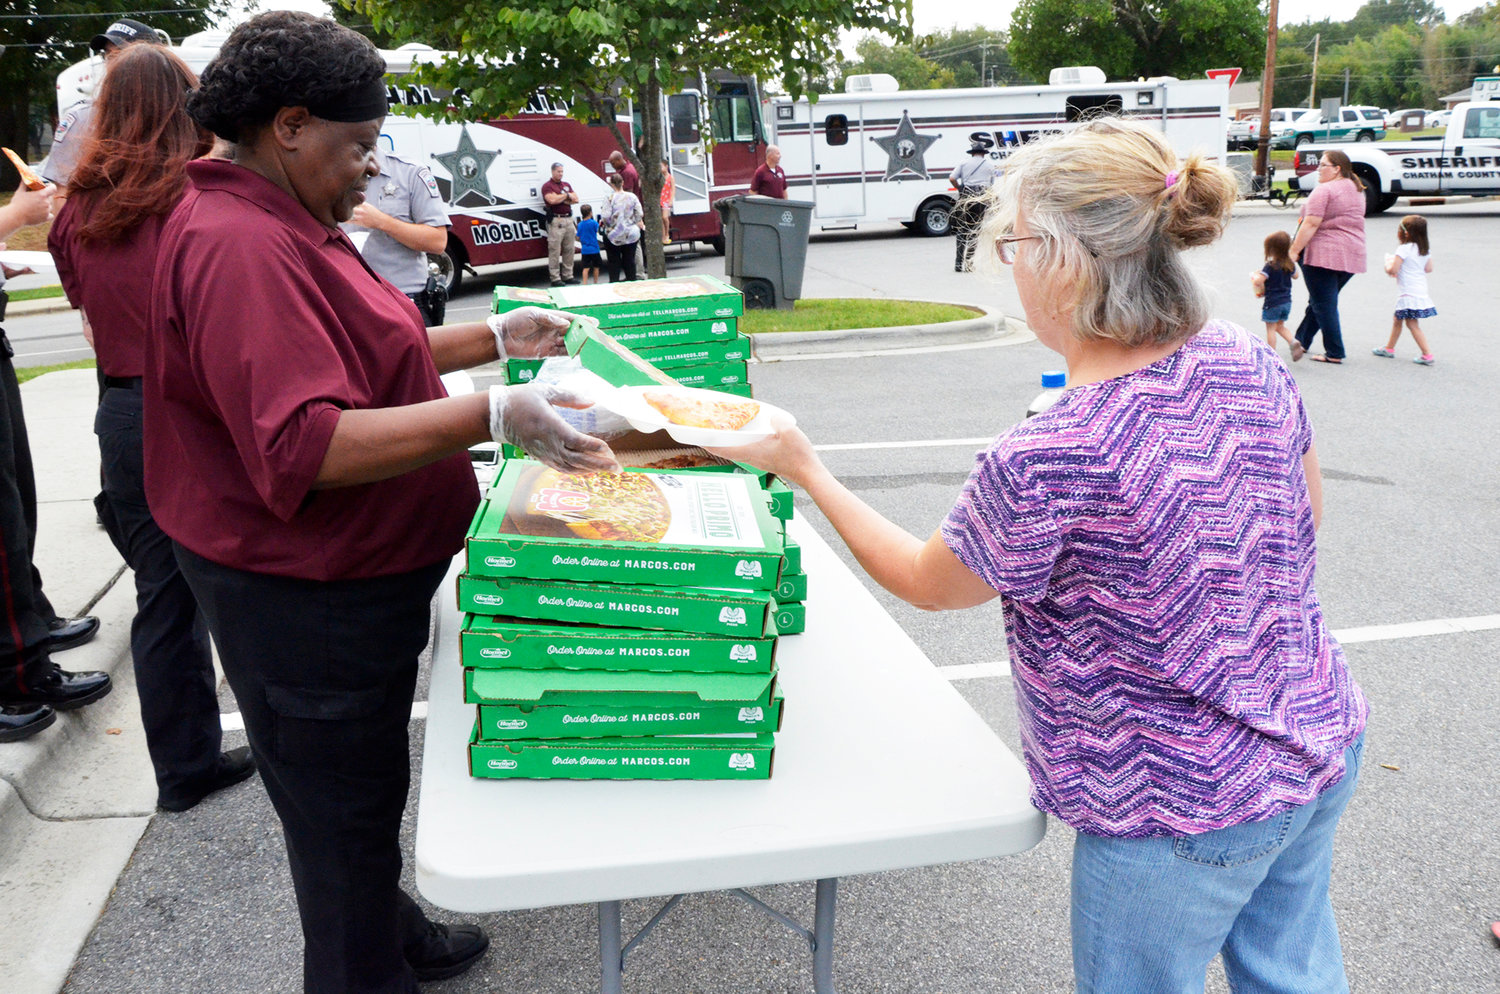 Lisa Gaines snags some hot cheese pizza from deputies at the Chatham County Sheriff's Office Community Appreciation event last Friday. The event offered the public a chance to meet the deputies, see their mobile command units and other law enforcement tools.